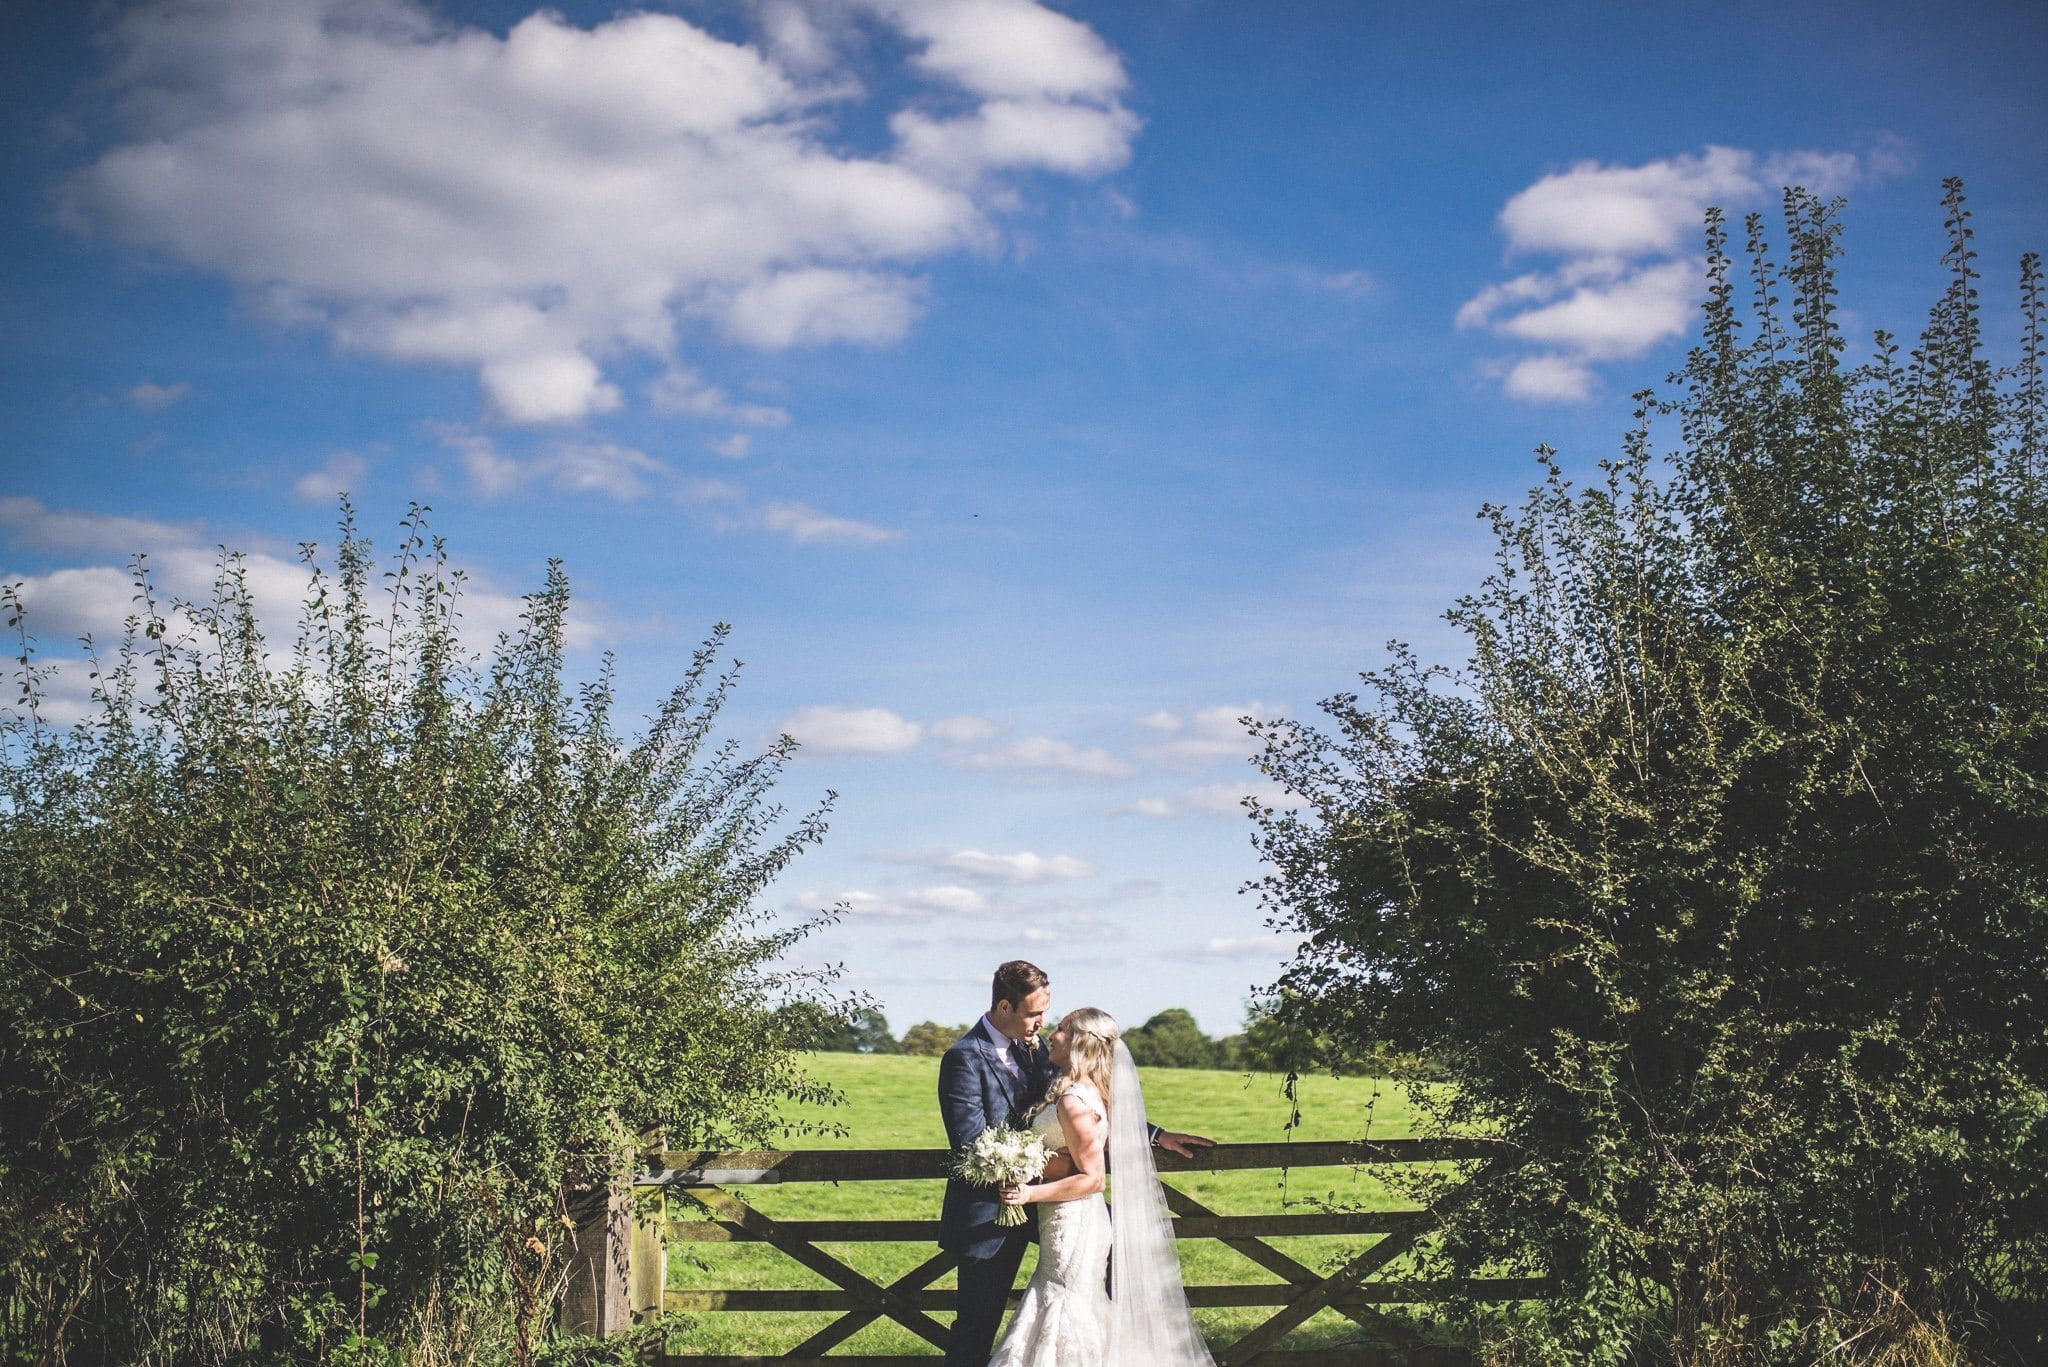 The couple gaze at each other in front of a gate into a field, and the sky above them is a deep blue